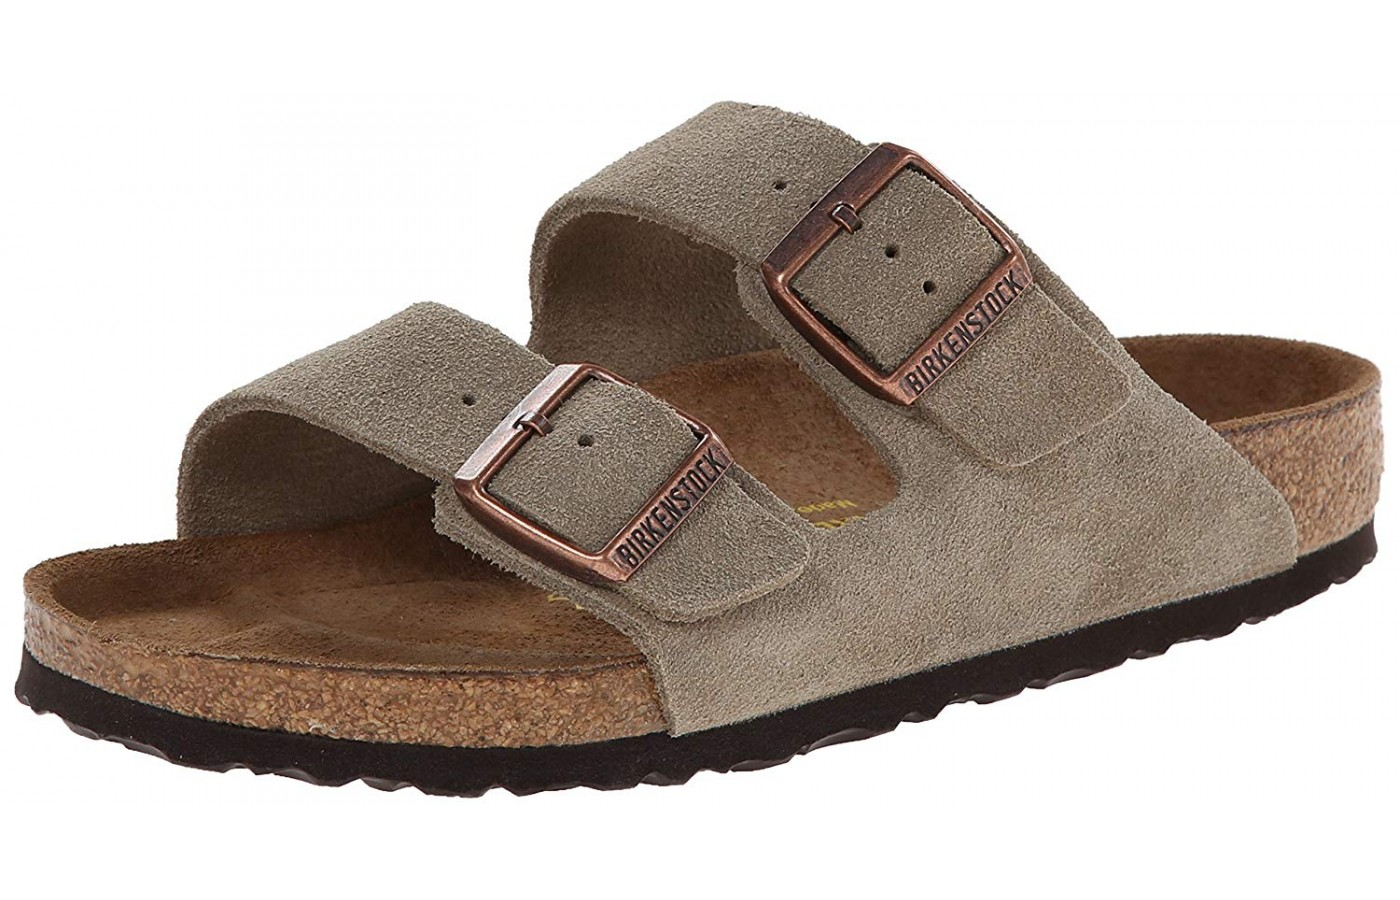 The two-strap upper of the Arizona is a favorite from Birkenstock.